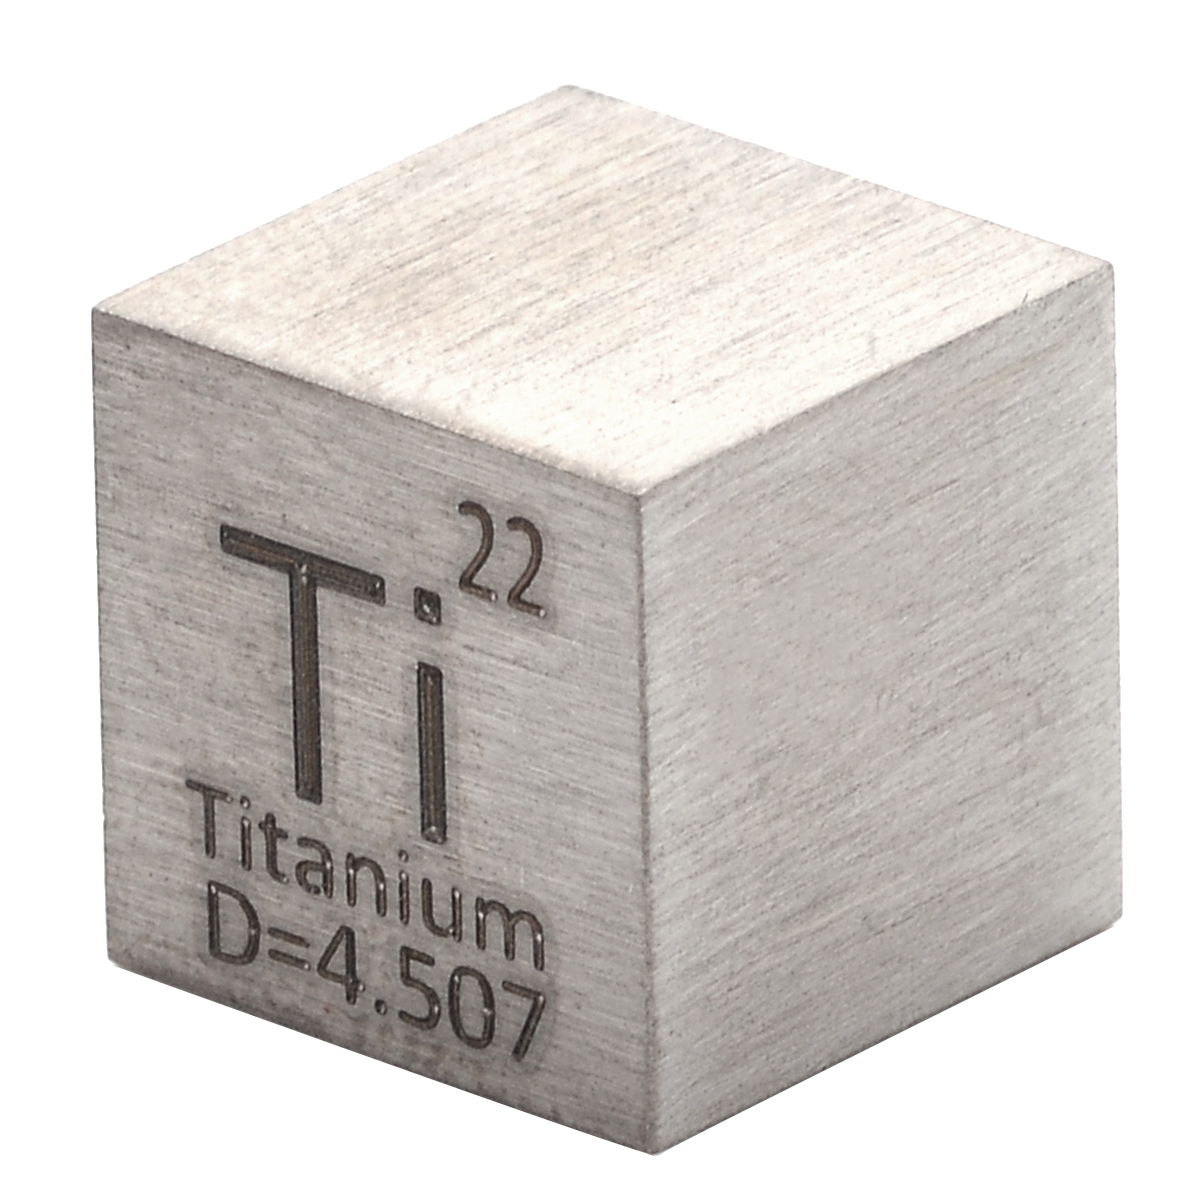 1pc 99.5% Pure Titanium High Purity Cube Ti Metal Carved Element Periodic Table Craft Wonderful Collection 10*10*10mm-in Tool Parts from Tools